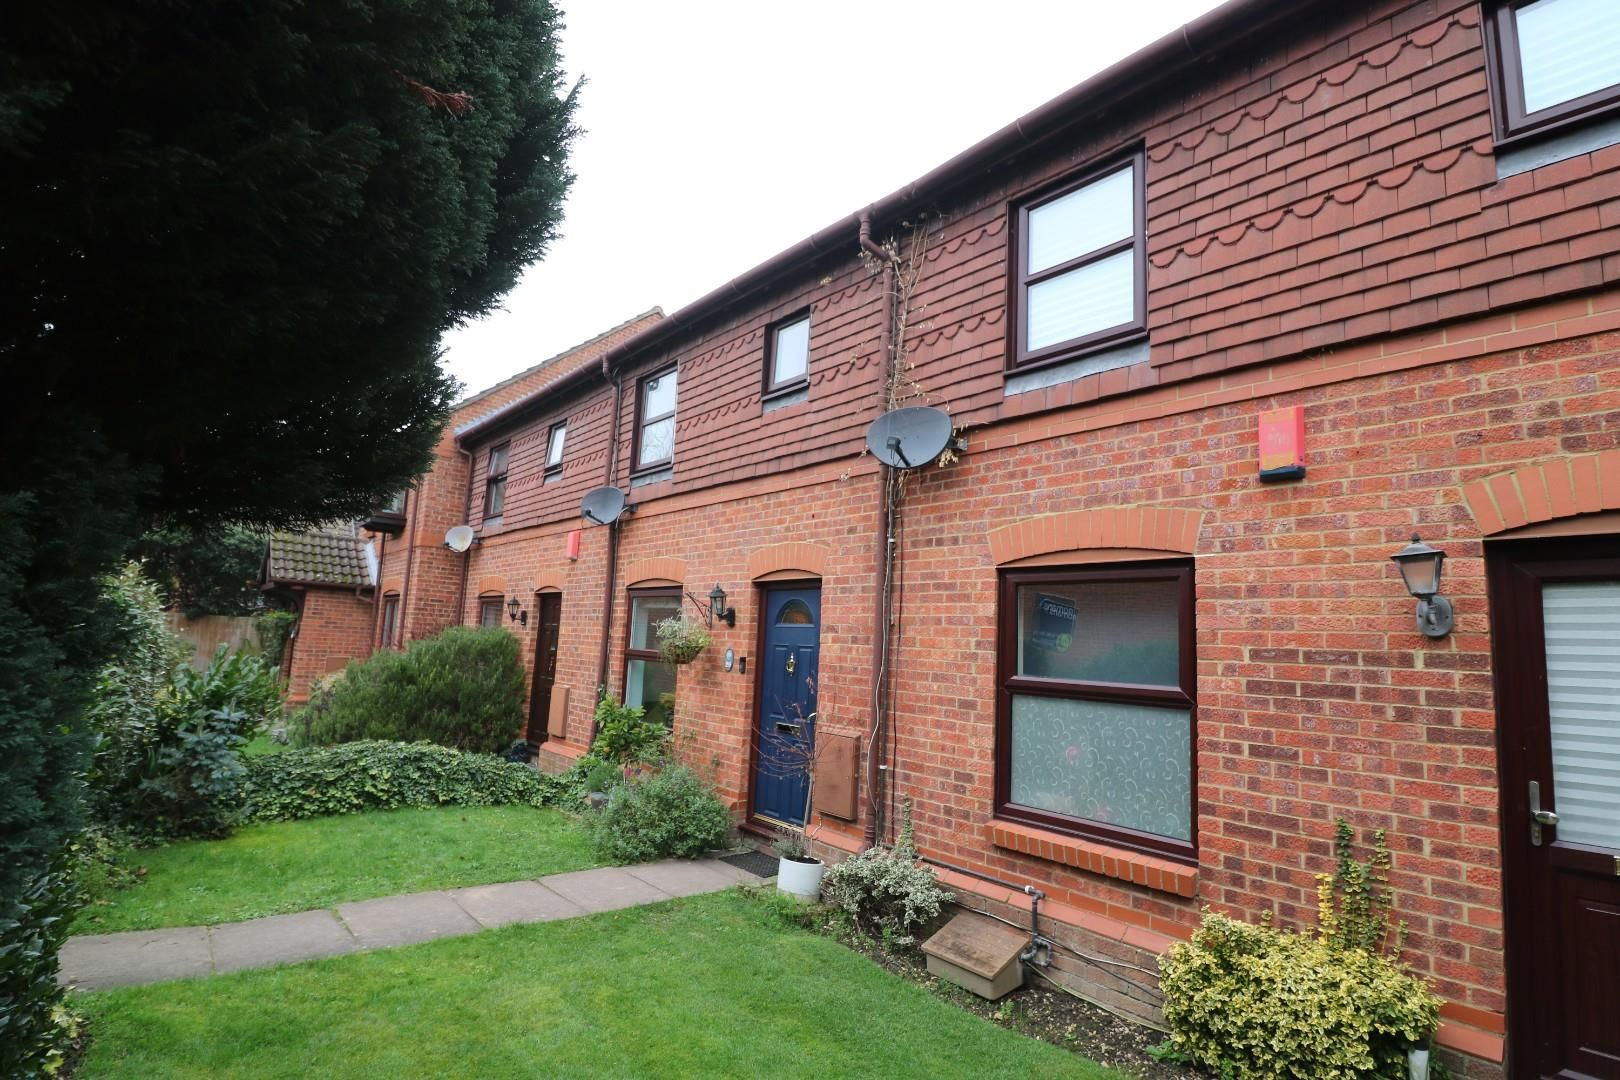 3 bed house to rent in Winkfield Row, RG42